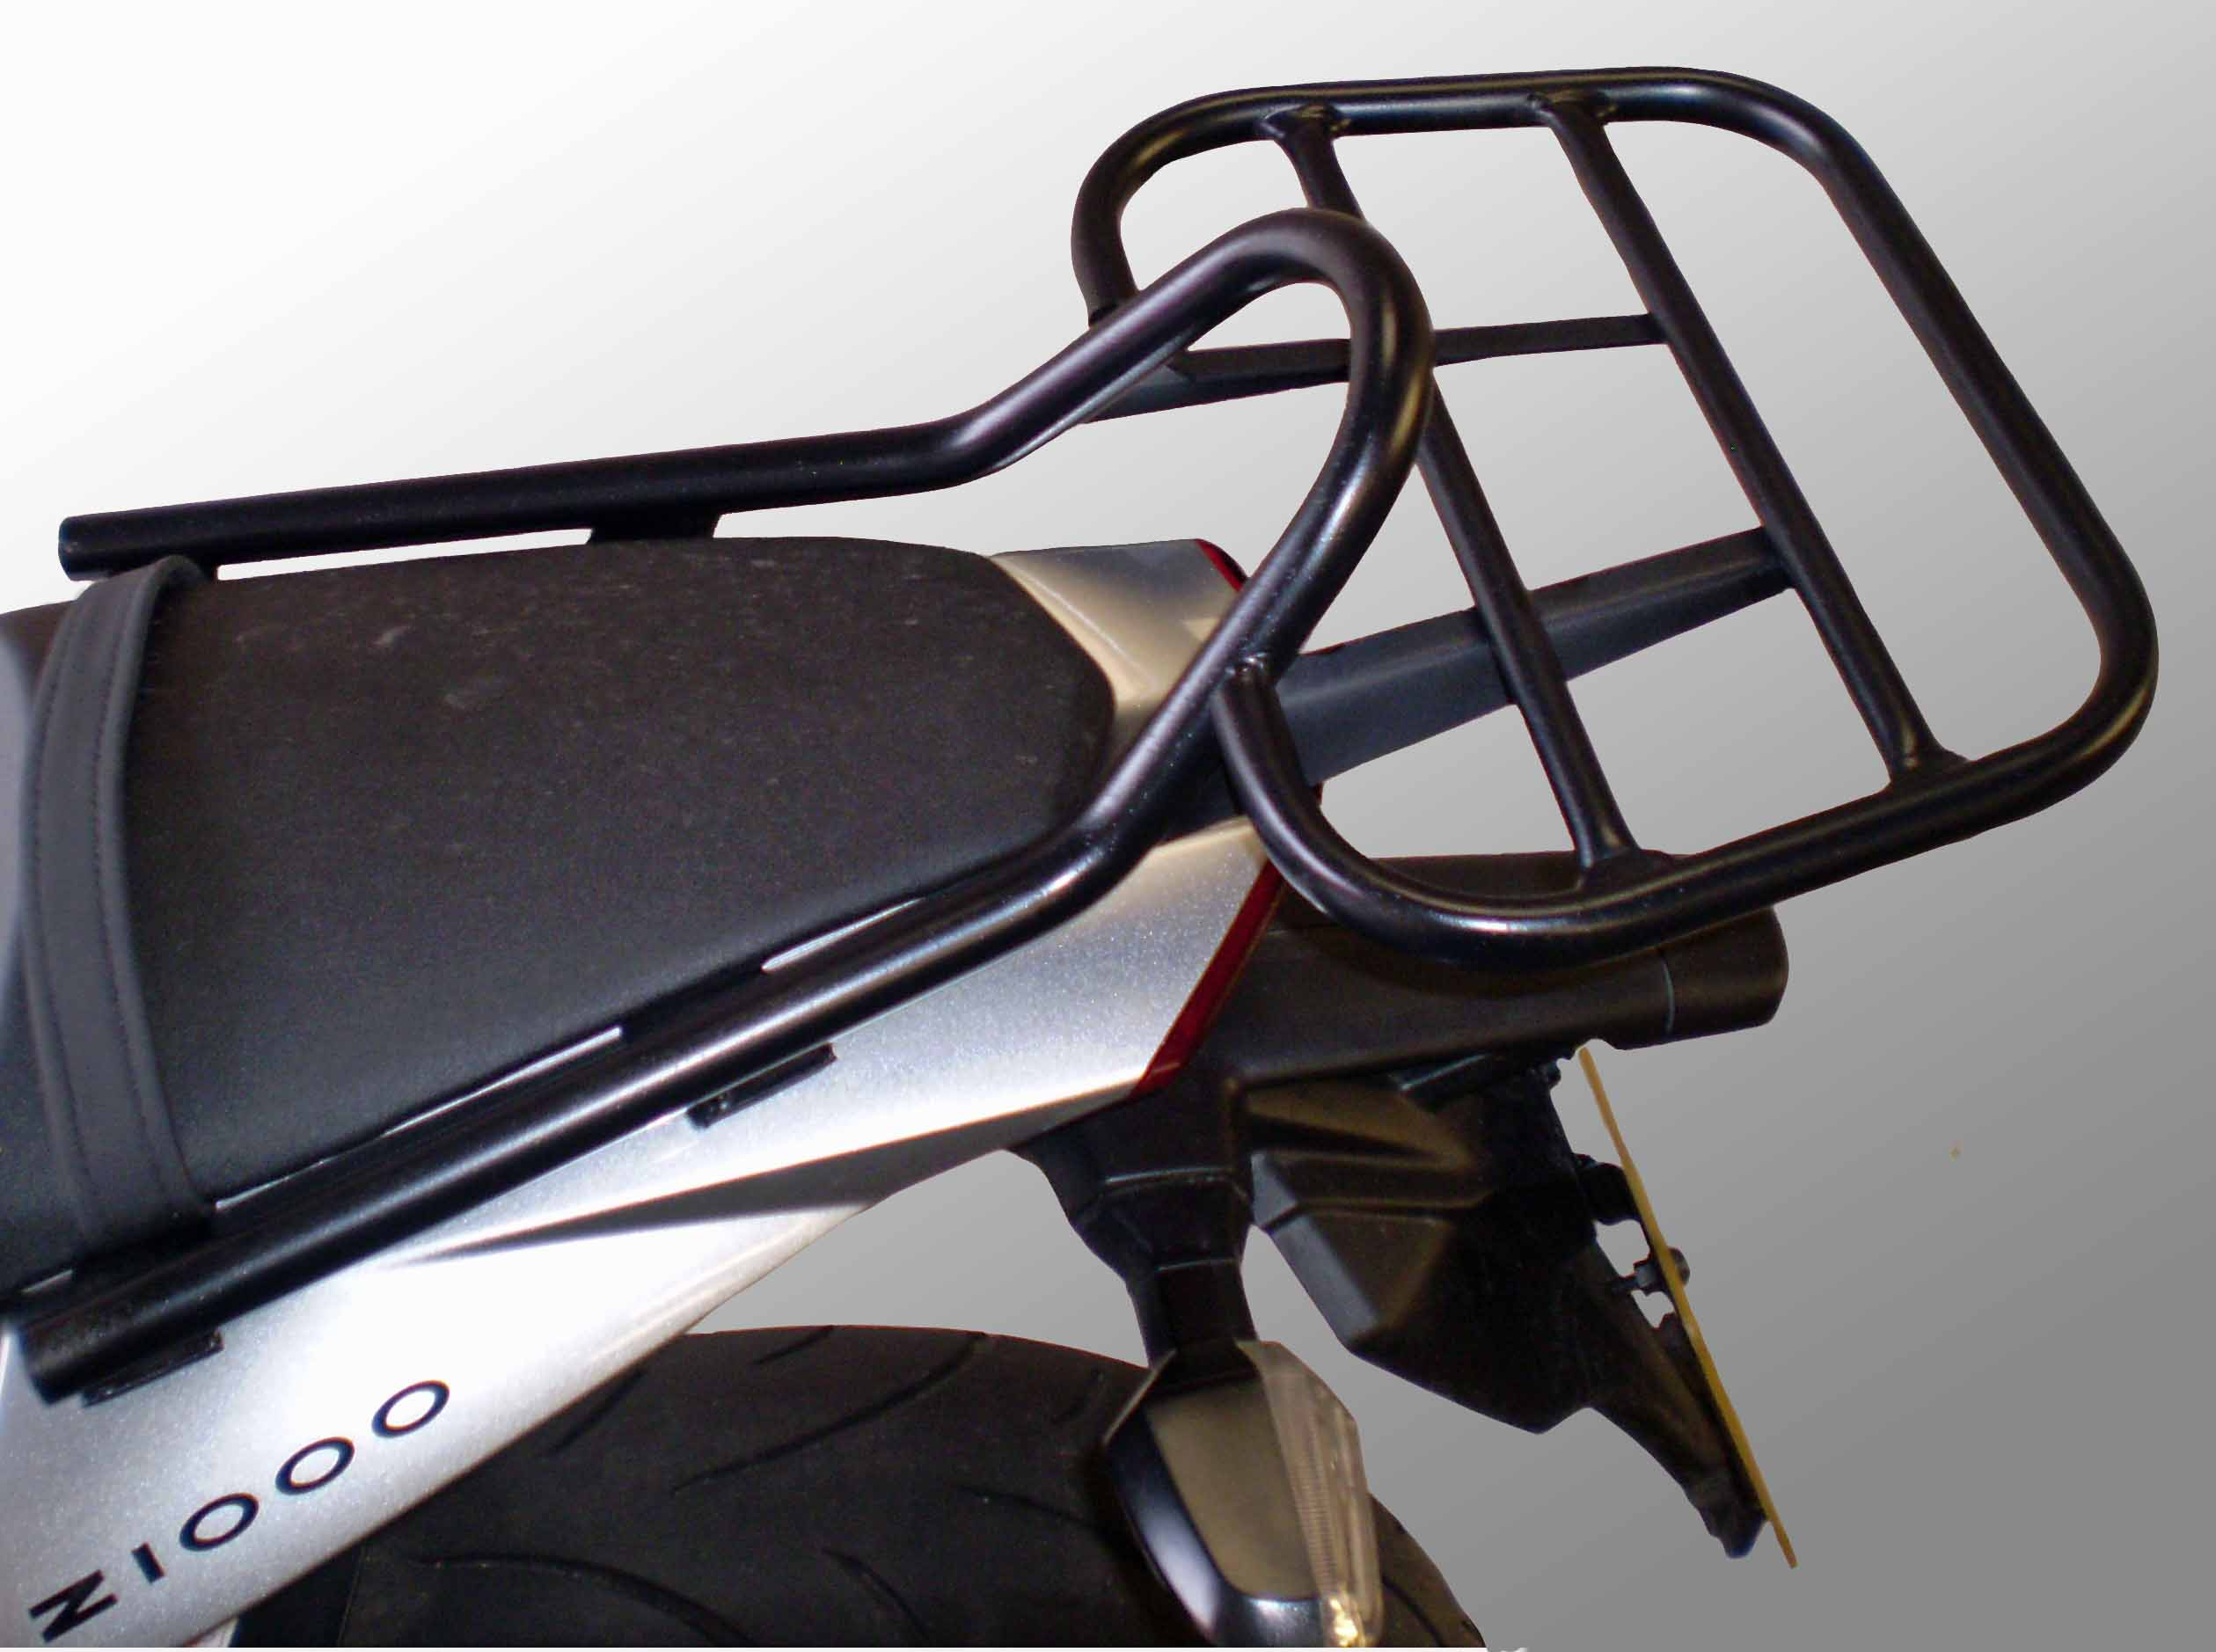 Kawasaki Z1000 D Models (including Special Edition) (2010-2013) Luggage Carrier In Black